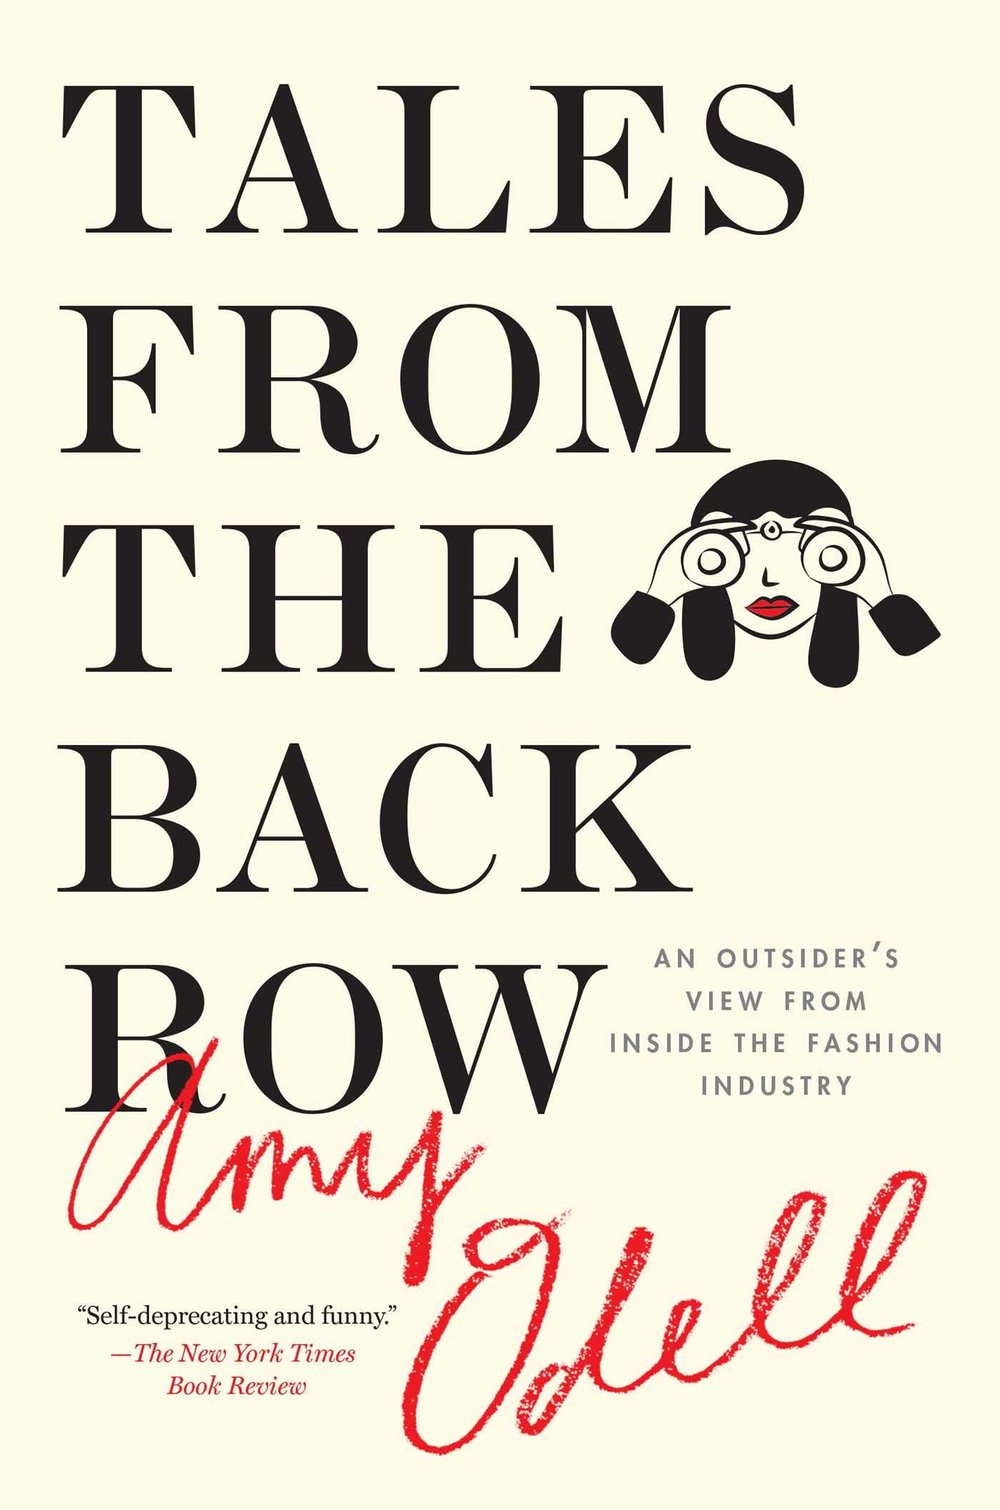 """Tales From the Back Row"" by Amy Odell and Indian Summer sundaes via @paperplatesblog"